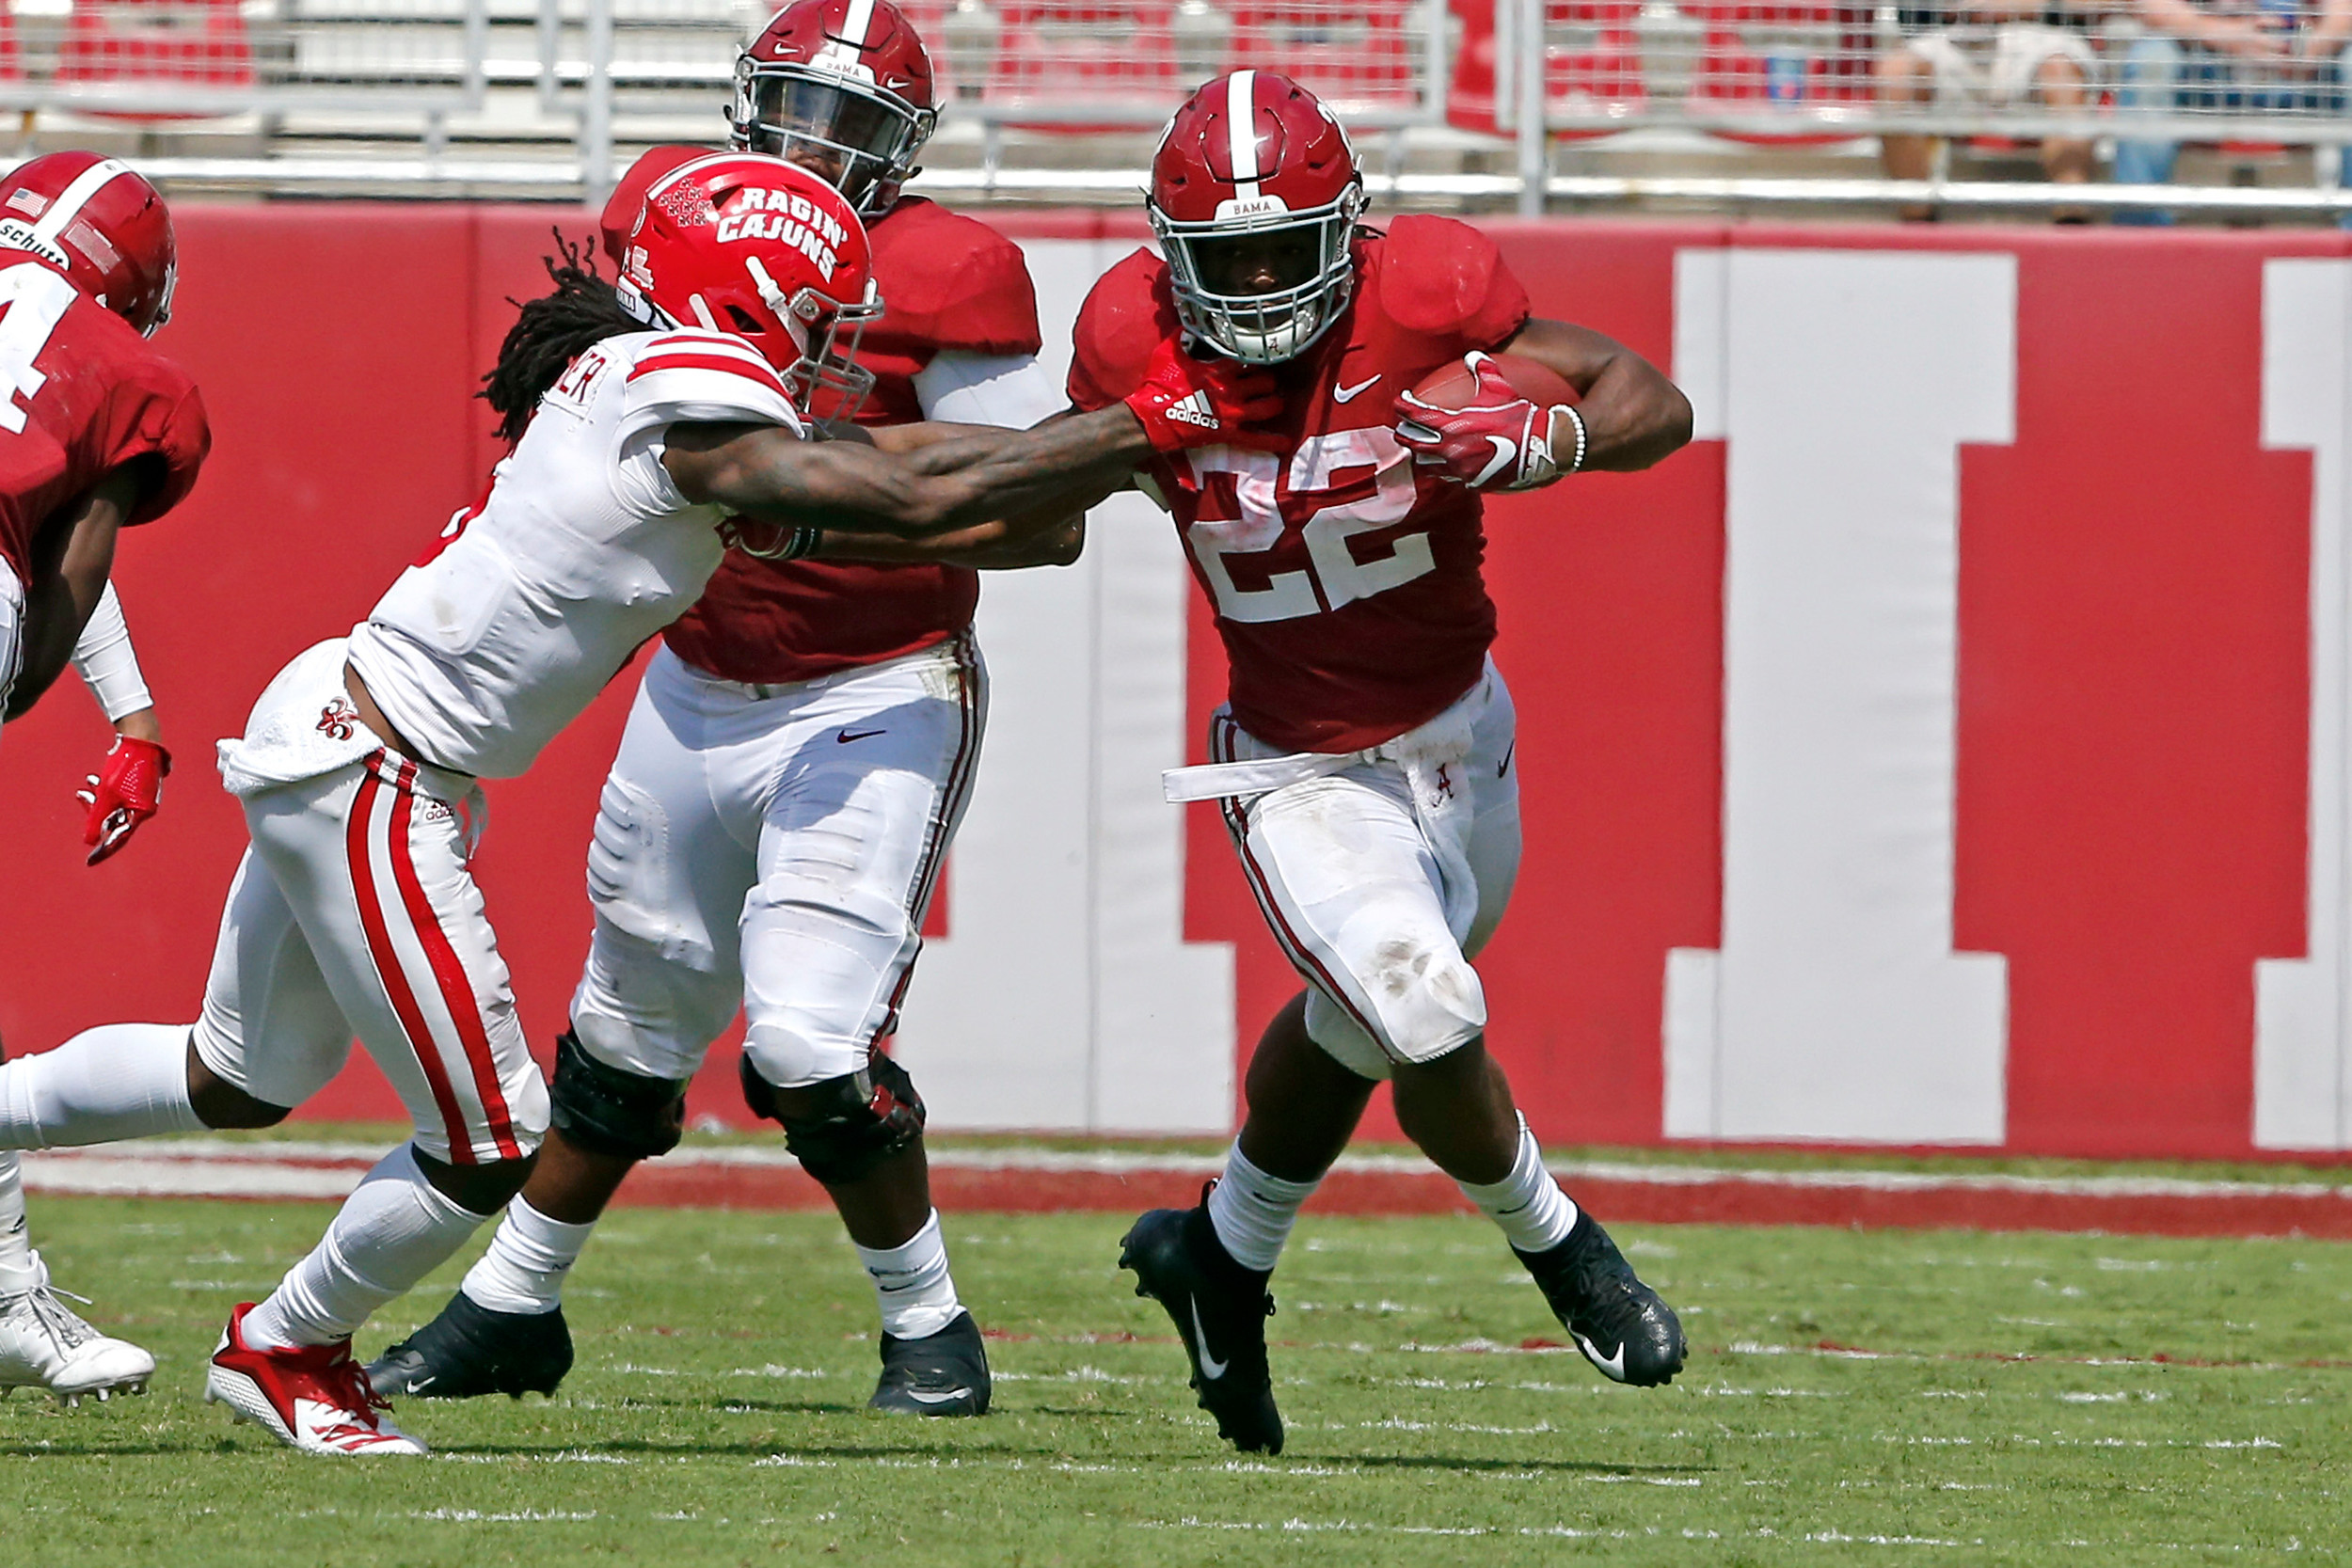 Alabama Crimson Tide running back Najee Harris (22) uses a stiff arm during a gain at Bryant-Denny Stadium in Tuscaloosa, Al on September 29, 2018. Jason Clark / Daily Mountain Eagle